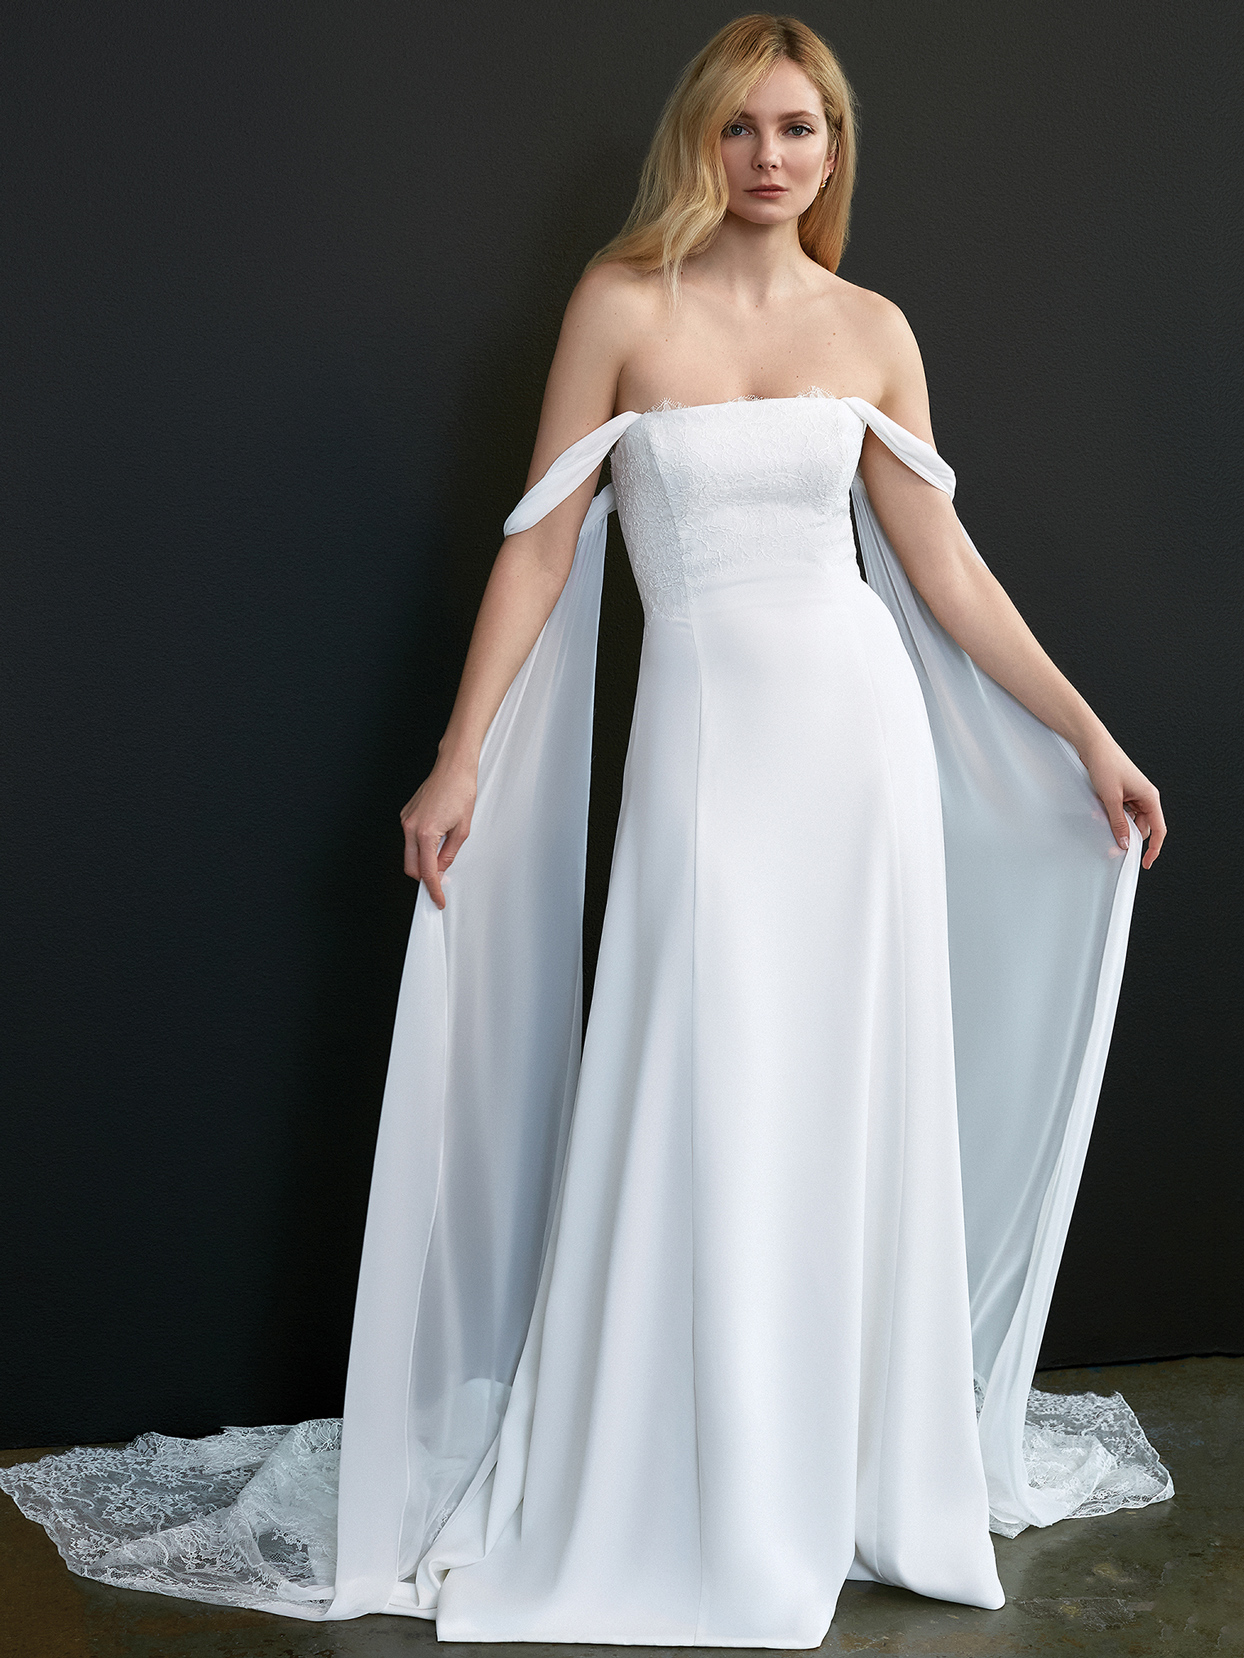 savannah miller off the shoulder cape wedding dress spring 2021